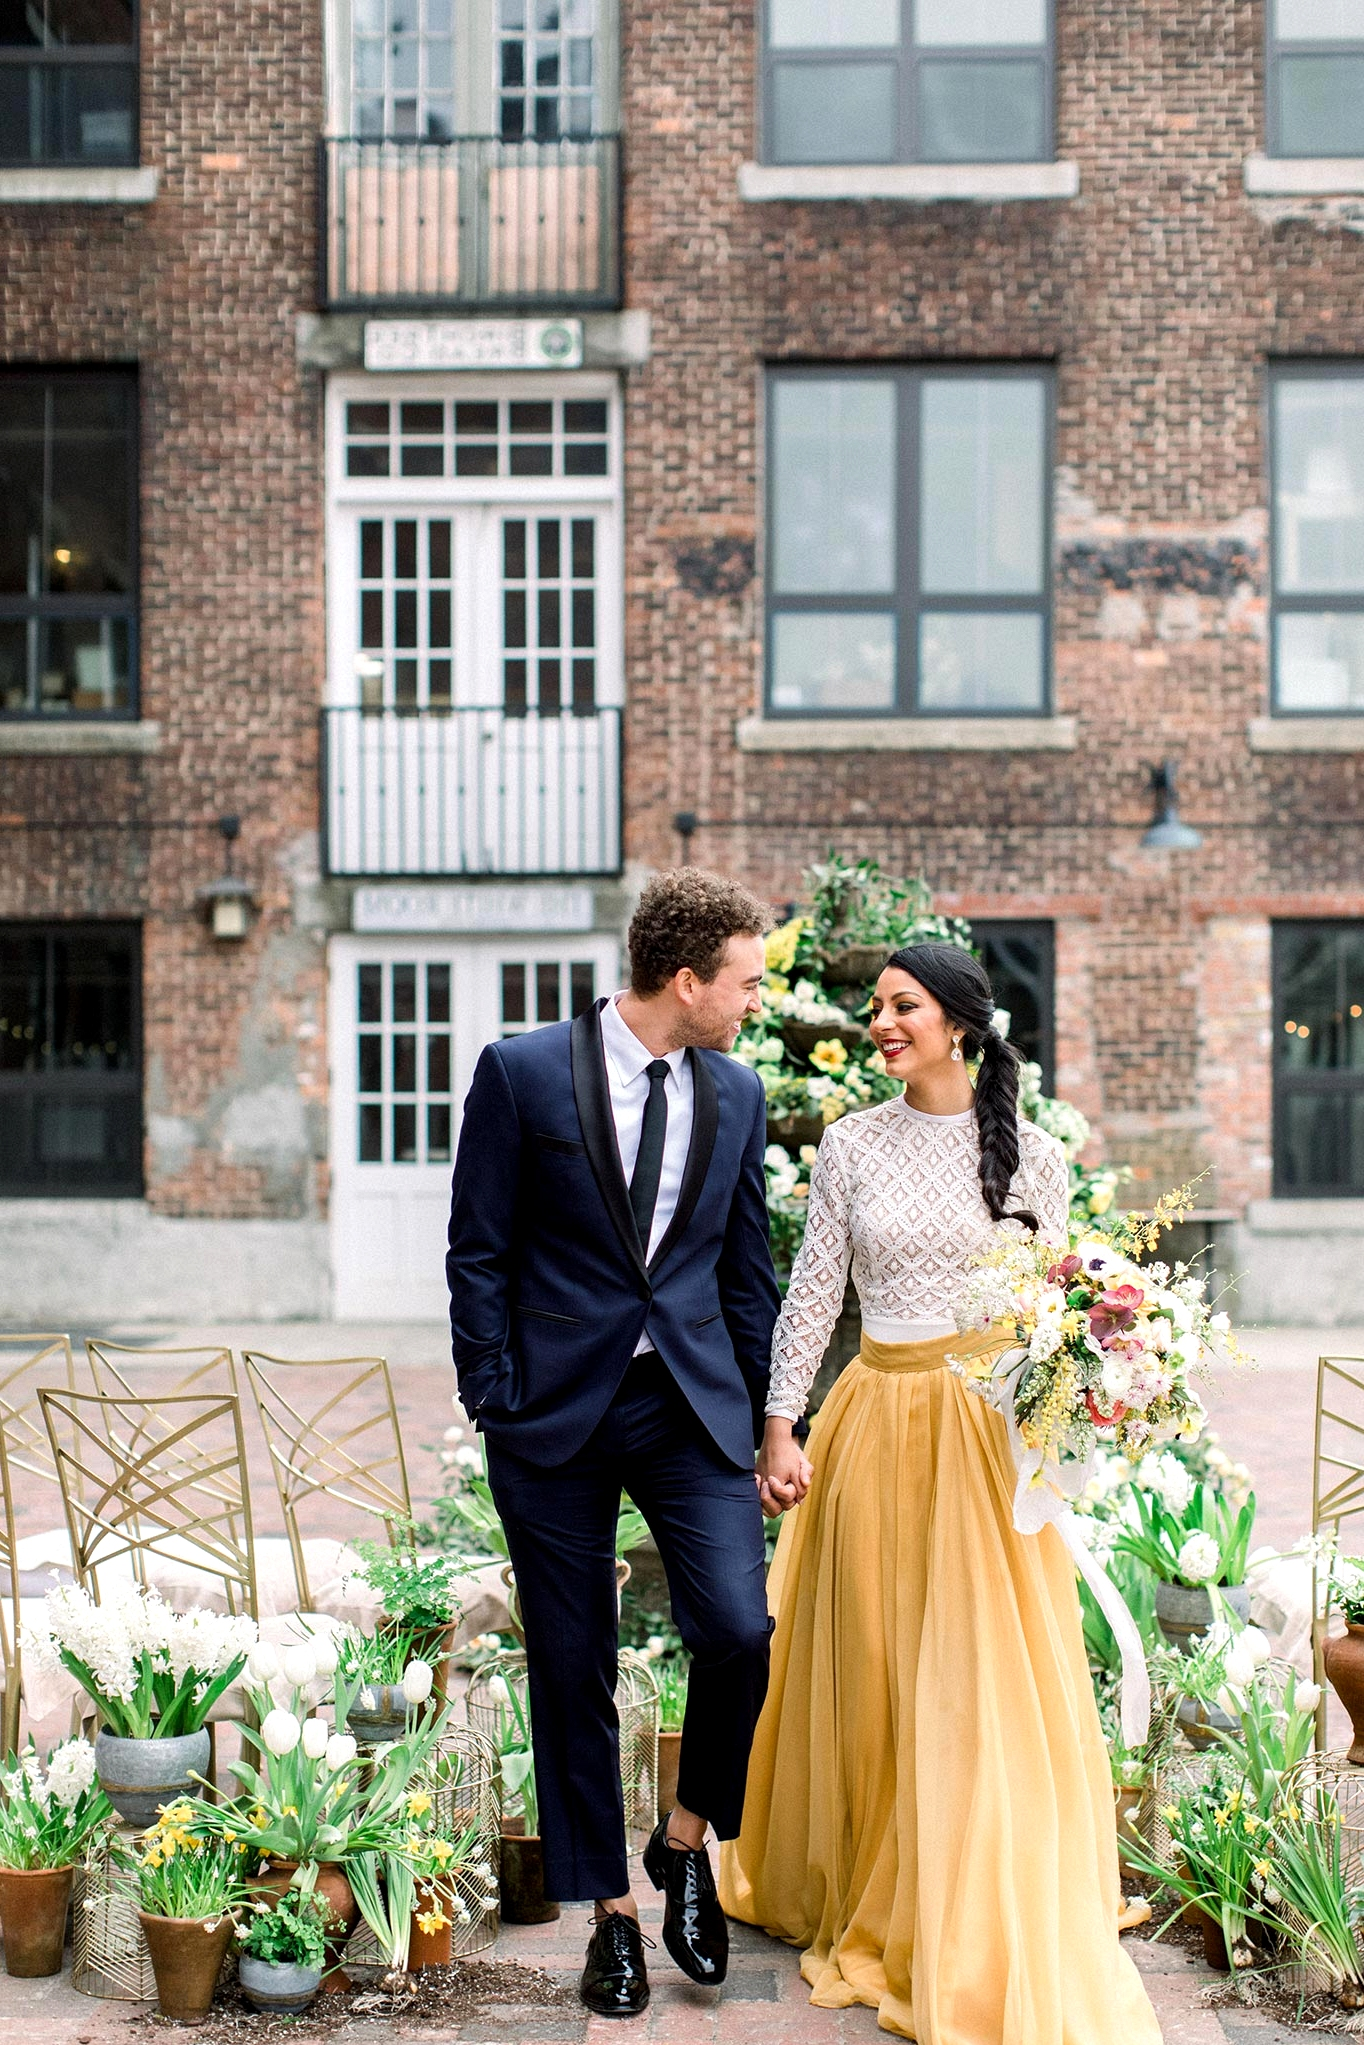 courtyard wedding ceremony with potted plant aisle markers, a floral fountain backdrop, a groom in a navy suit and bride in a two piece wedding dress with a mustard skirt and lace top